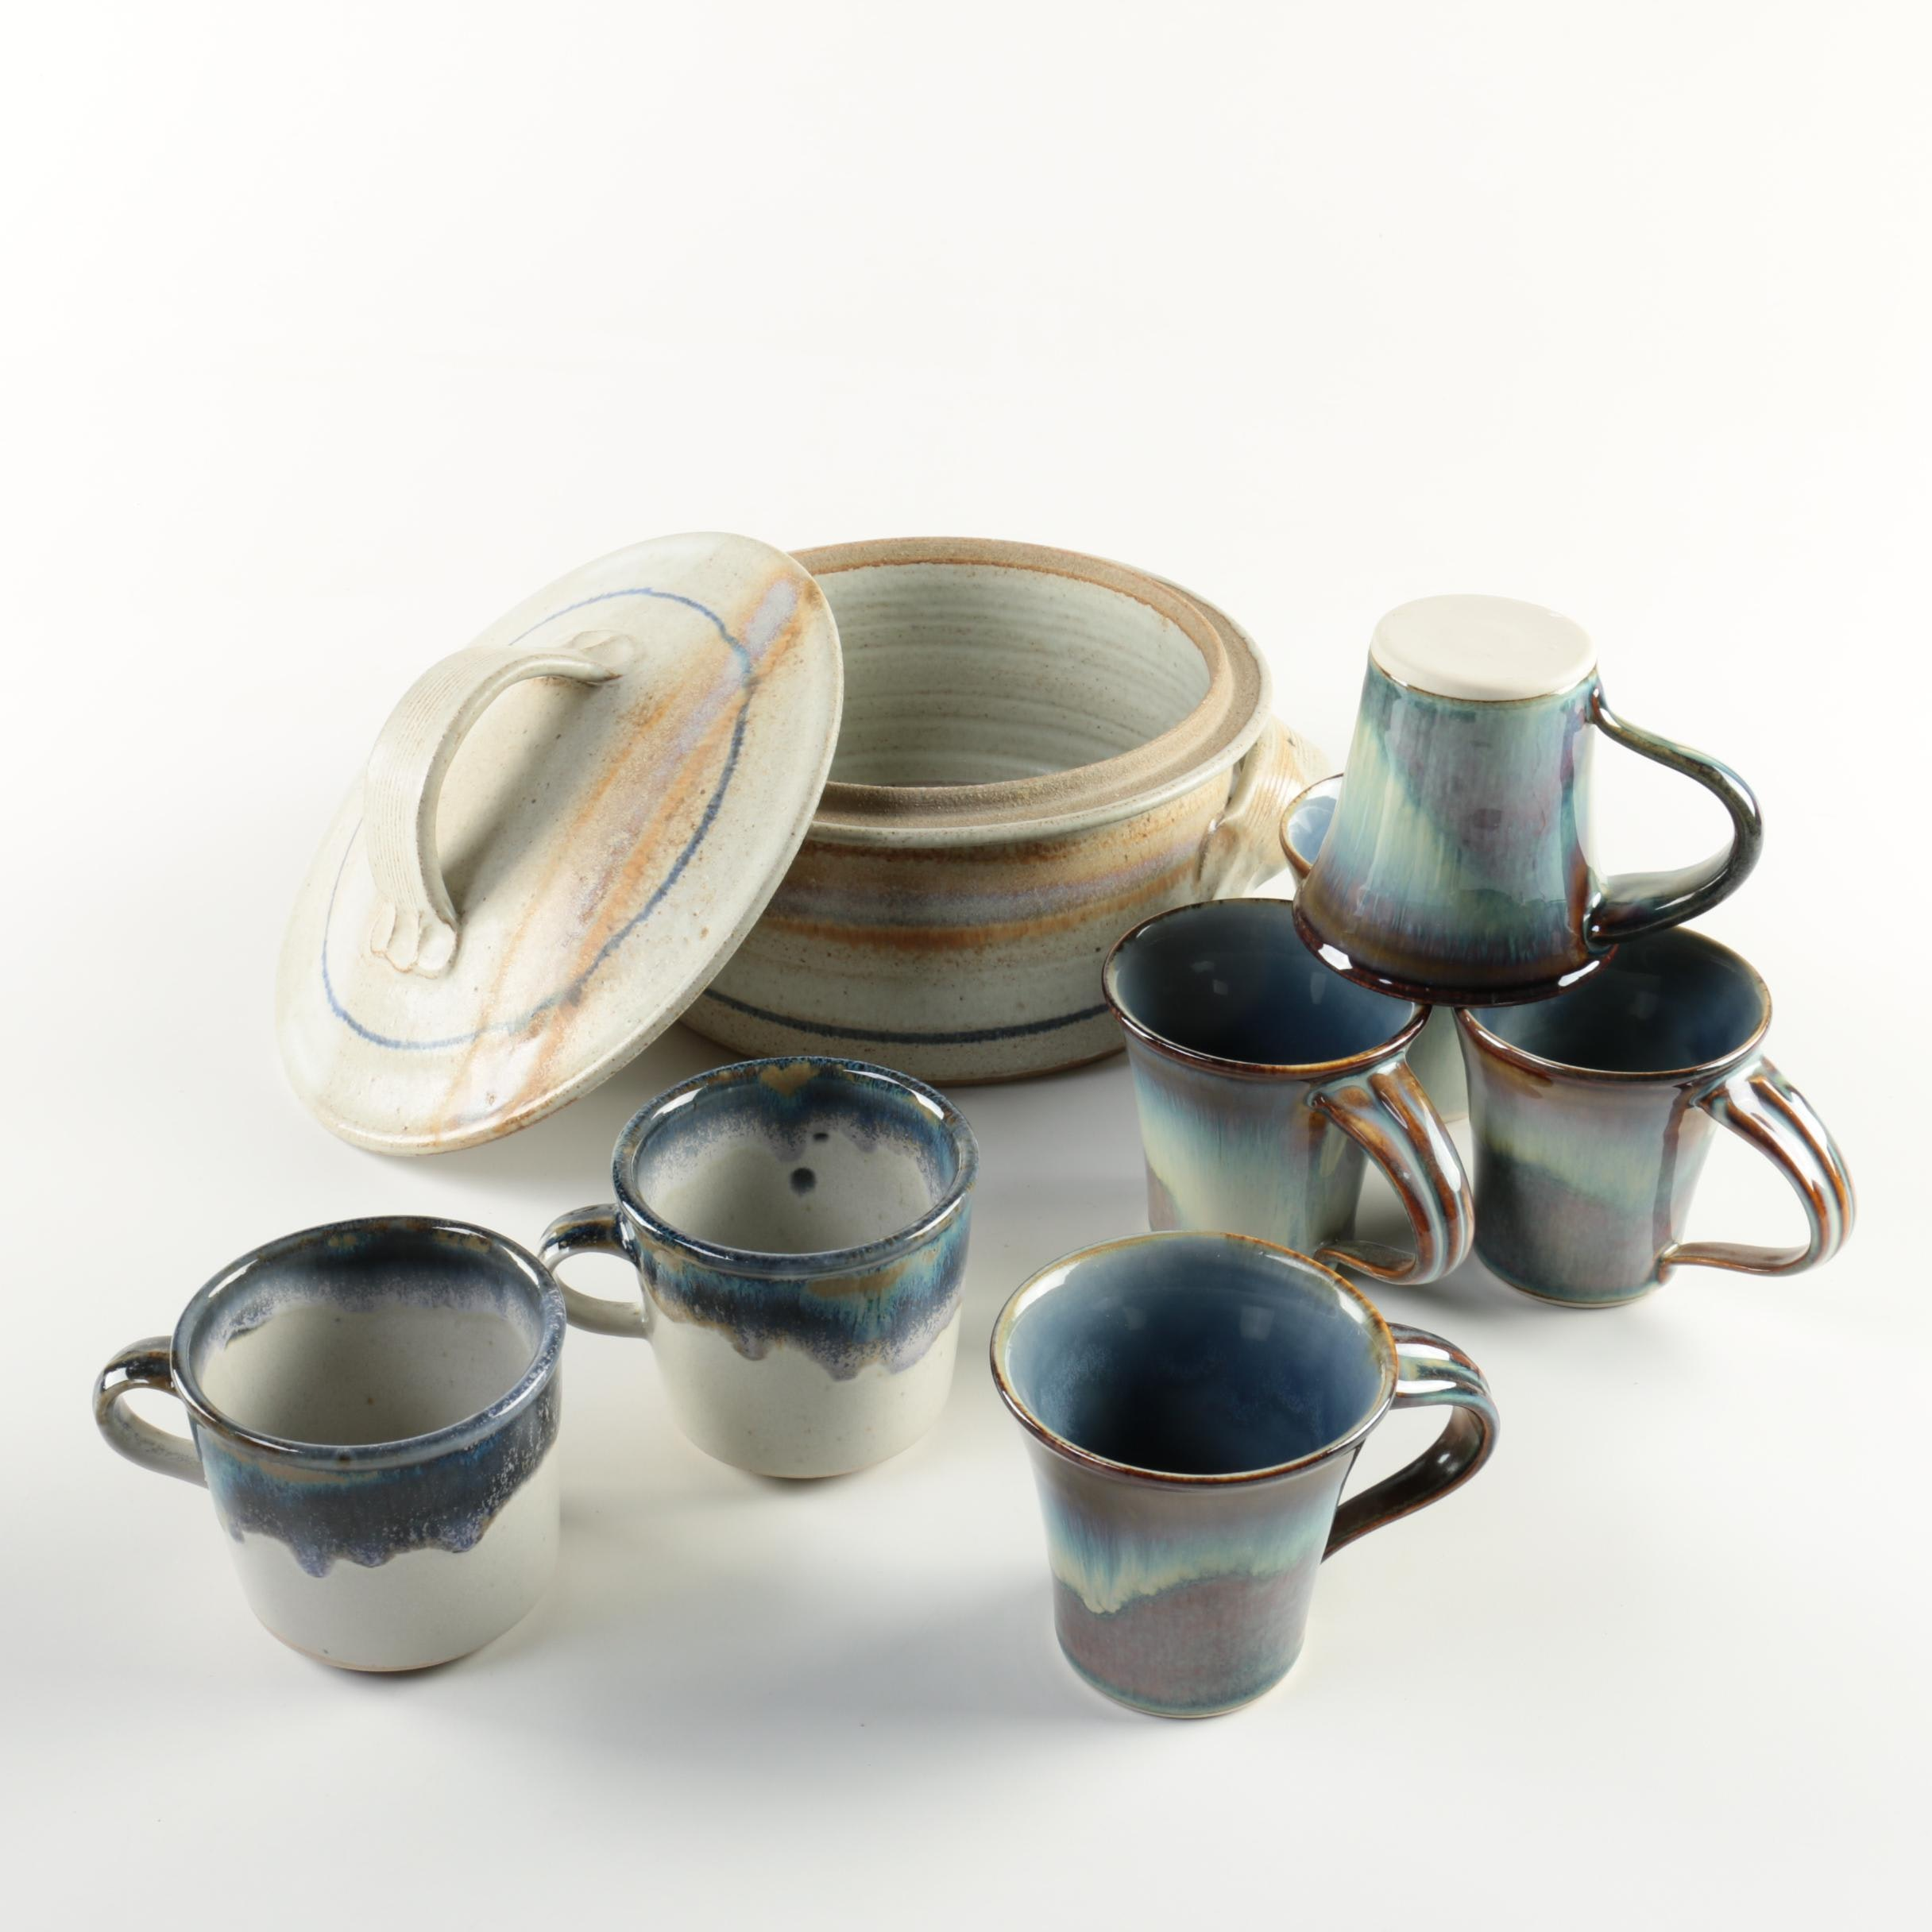 Hand Thrown Stoneware and Porcelain Tableware including Stone Soldier Pottery ... & Hand Thrown Stoneware and Porcelain Tableware including Stone ...